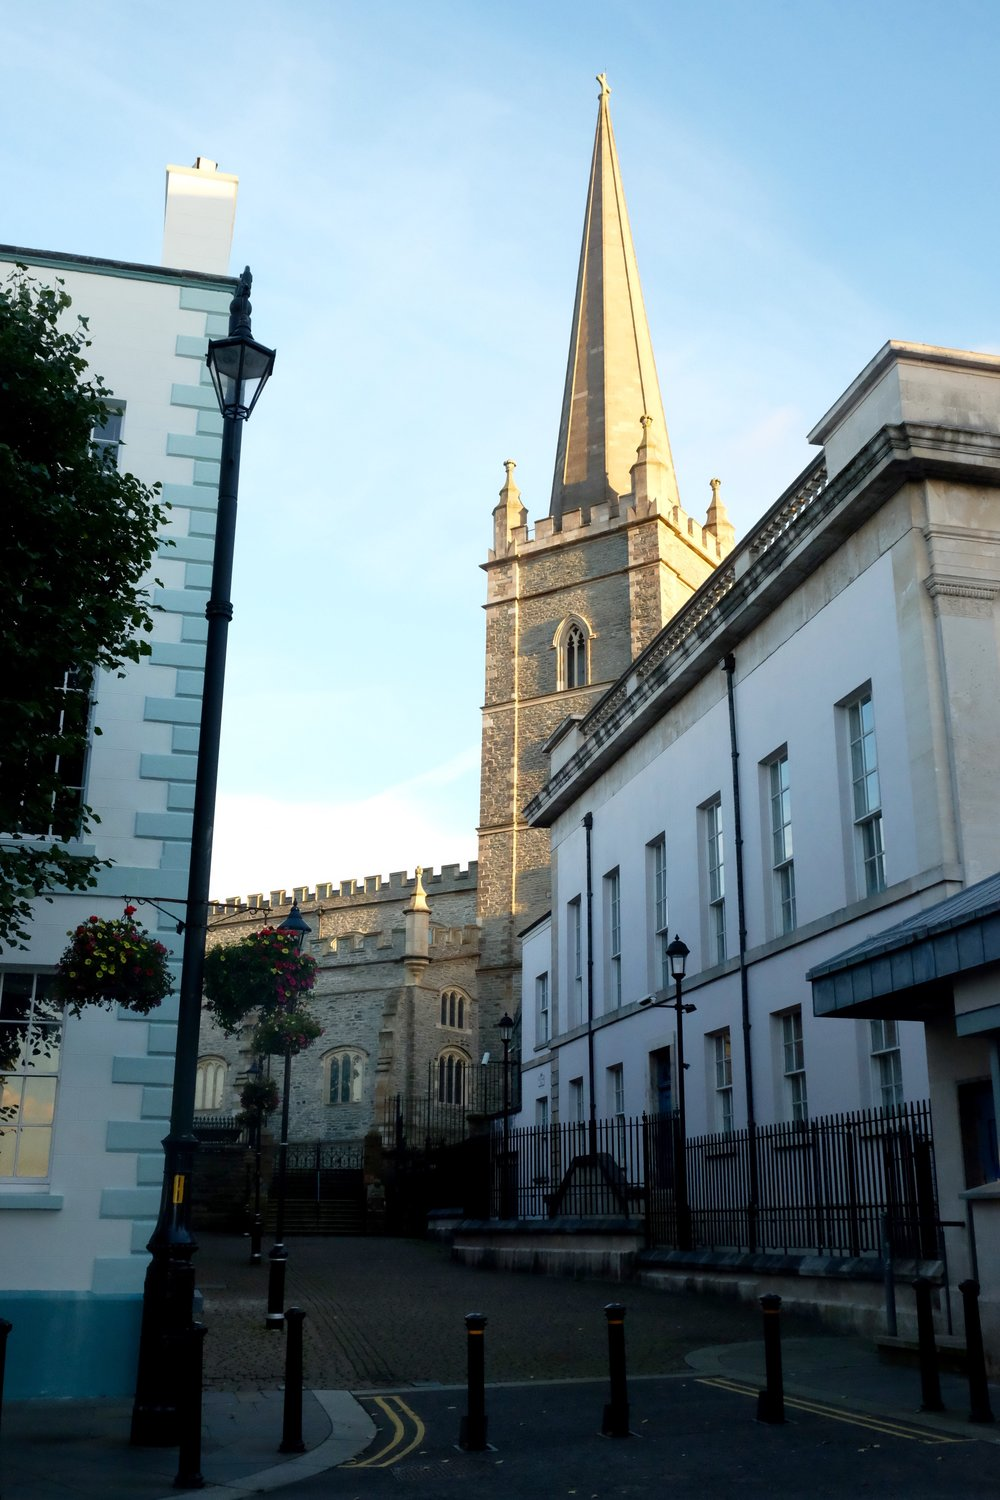 St. Columb's Cathedral, named for St. Columba, who established a monastery here in 546 AD which is the earliest reference of Derry's existence. This was the first Protestant cathedral in the world.